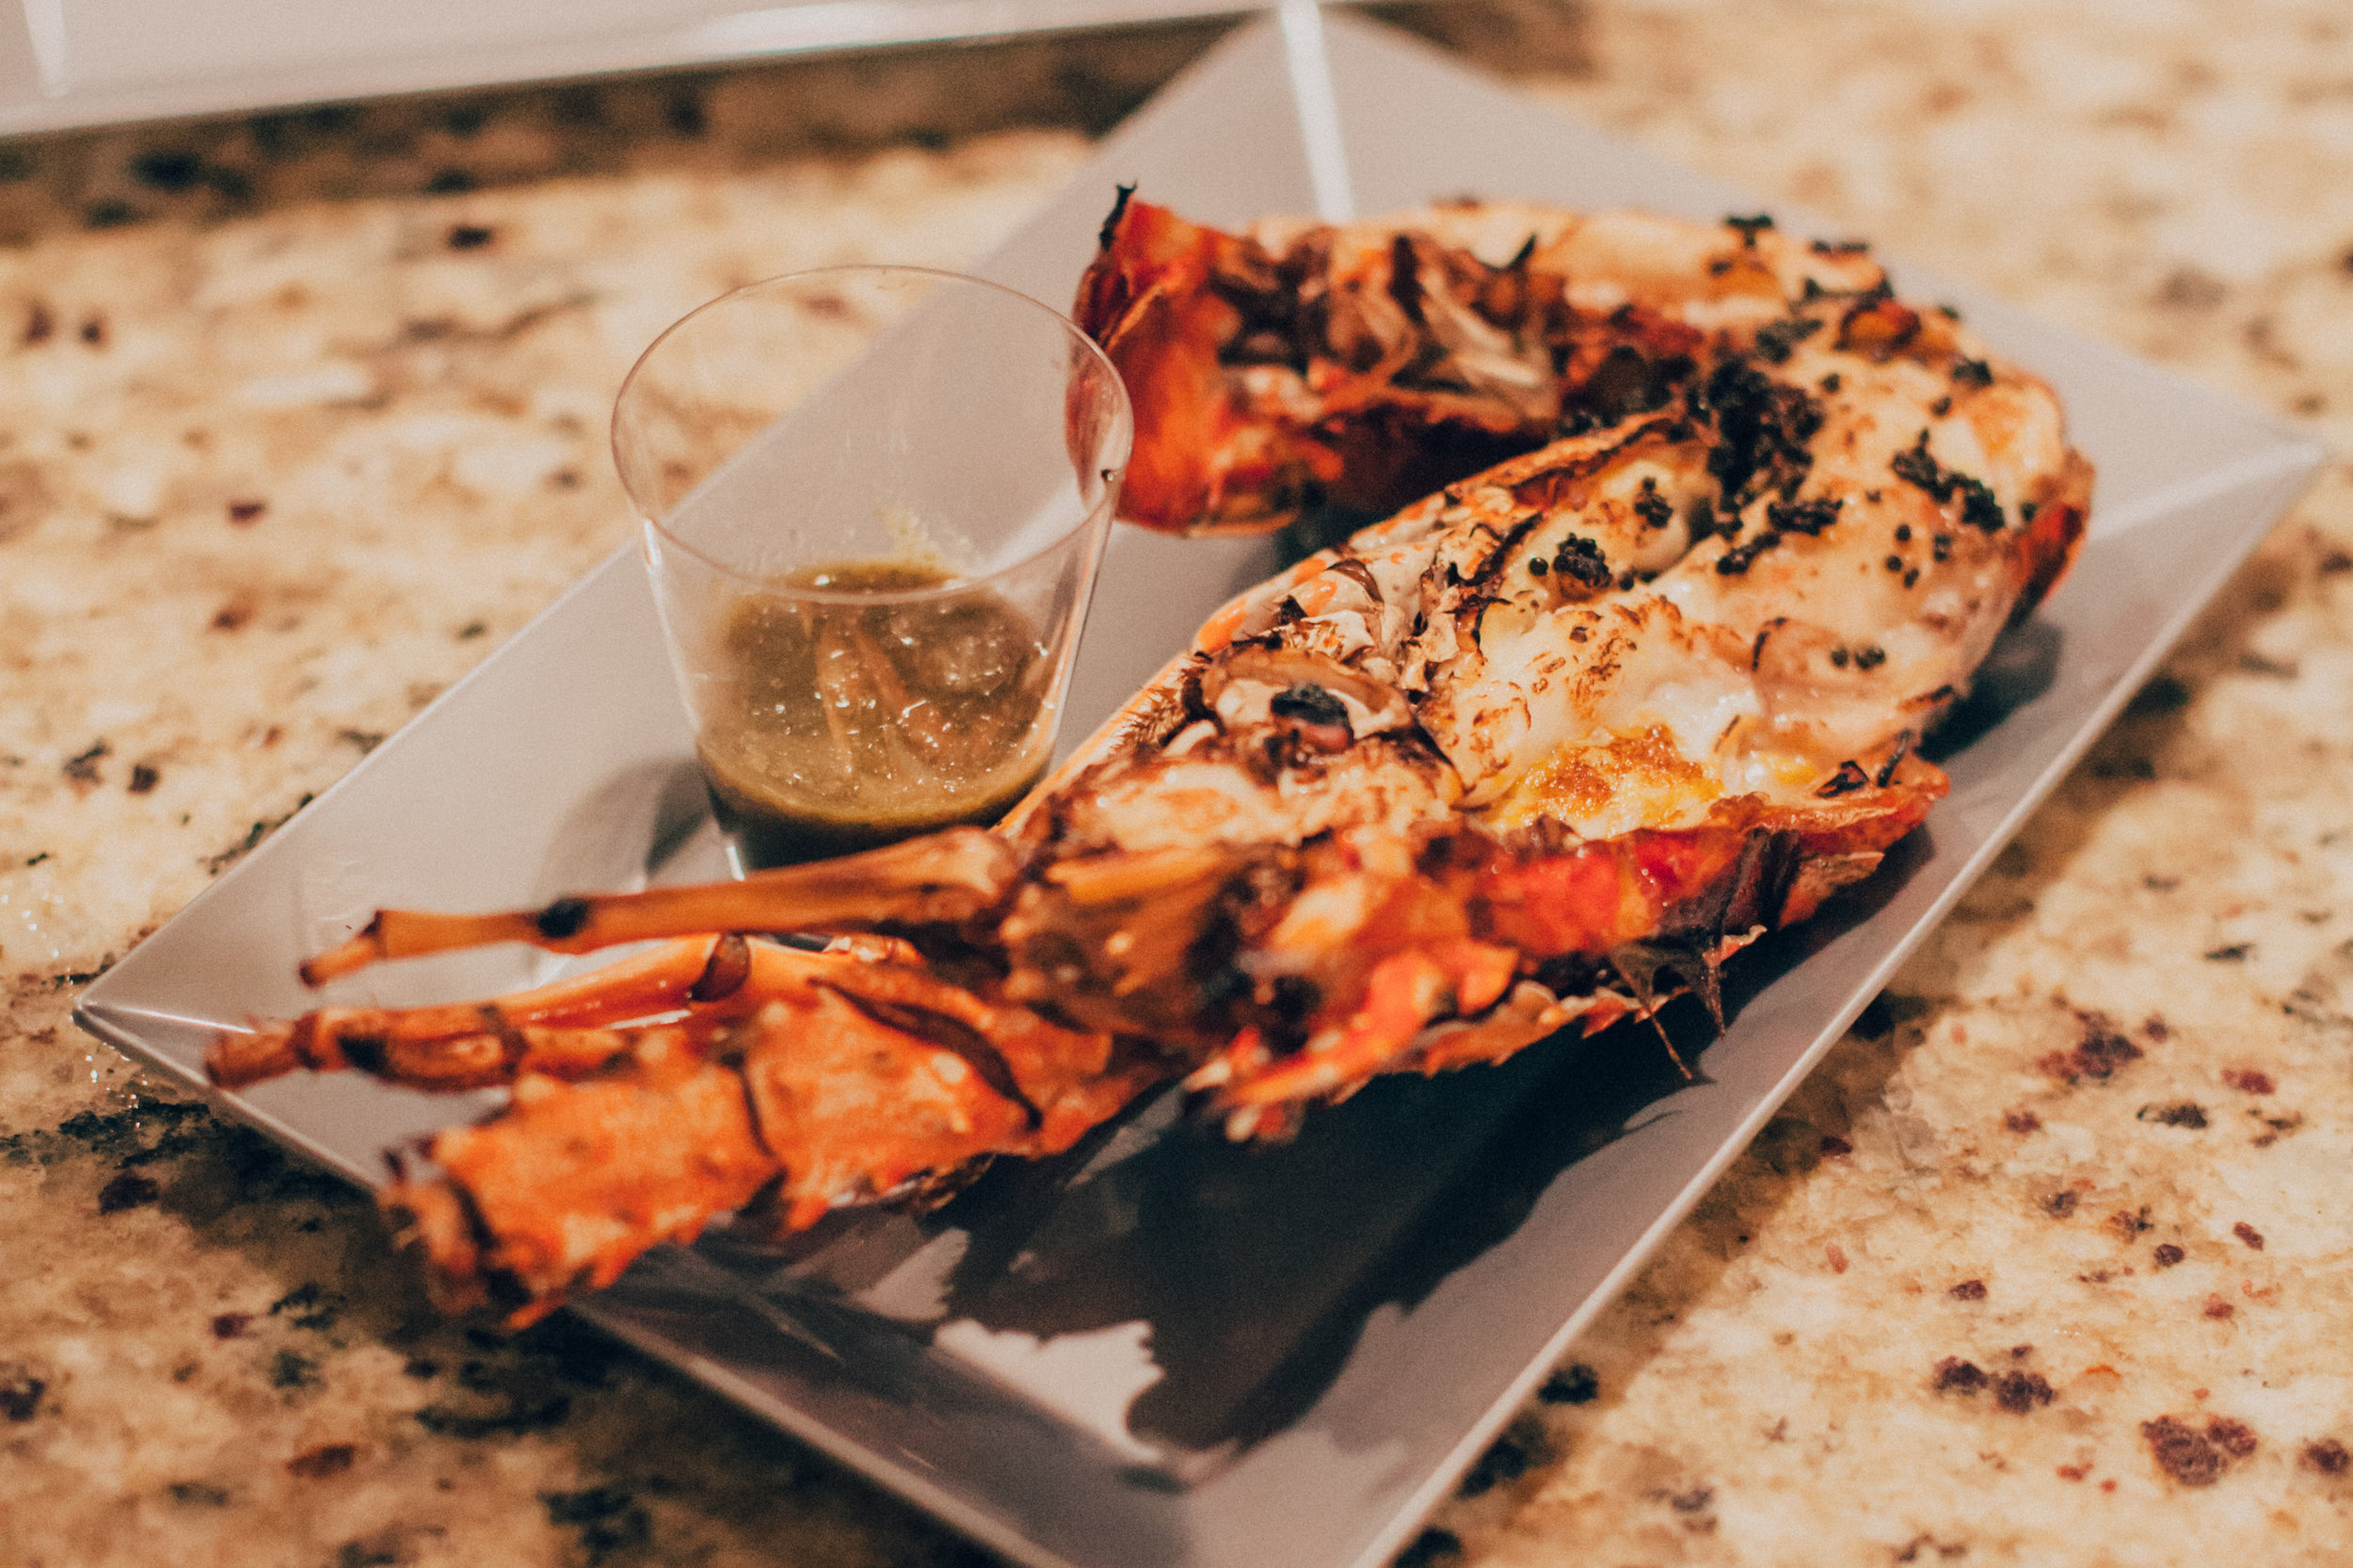 Oven-roasted Key West lobster served with a spicy tamarind fish sauce